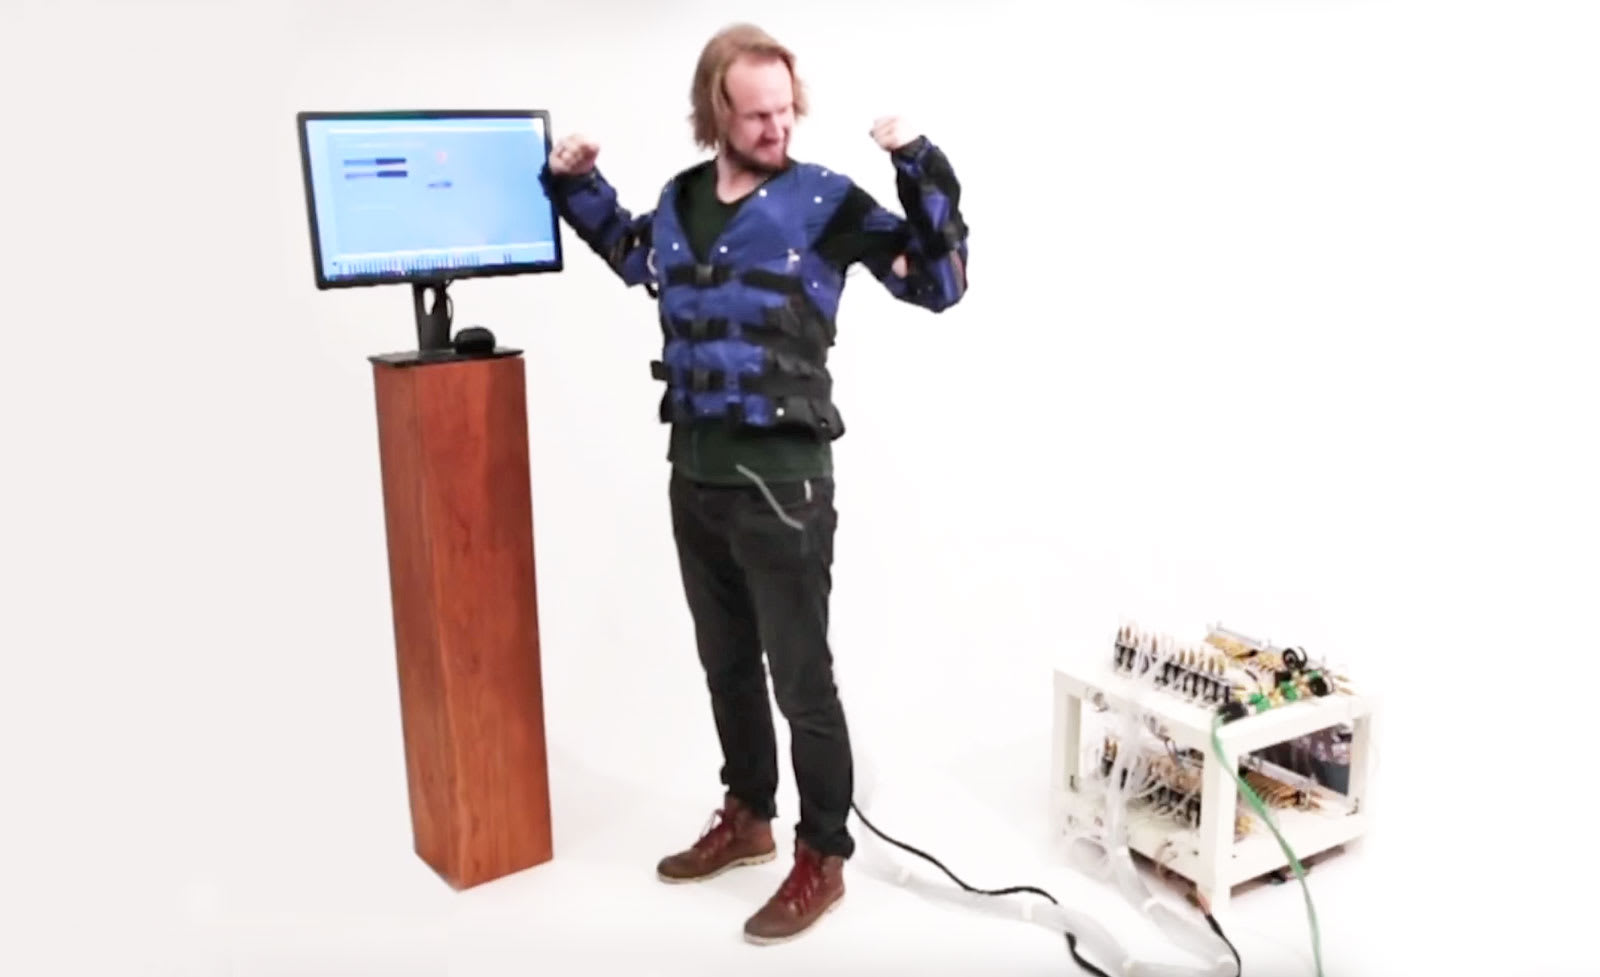 Disney's 'Force Jacket' prototype allows you to feel every